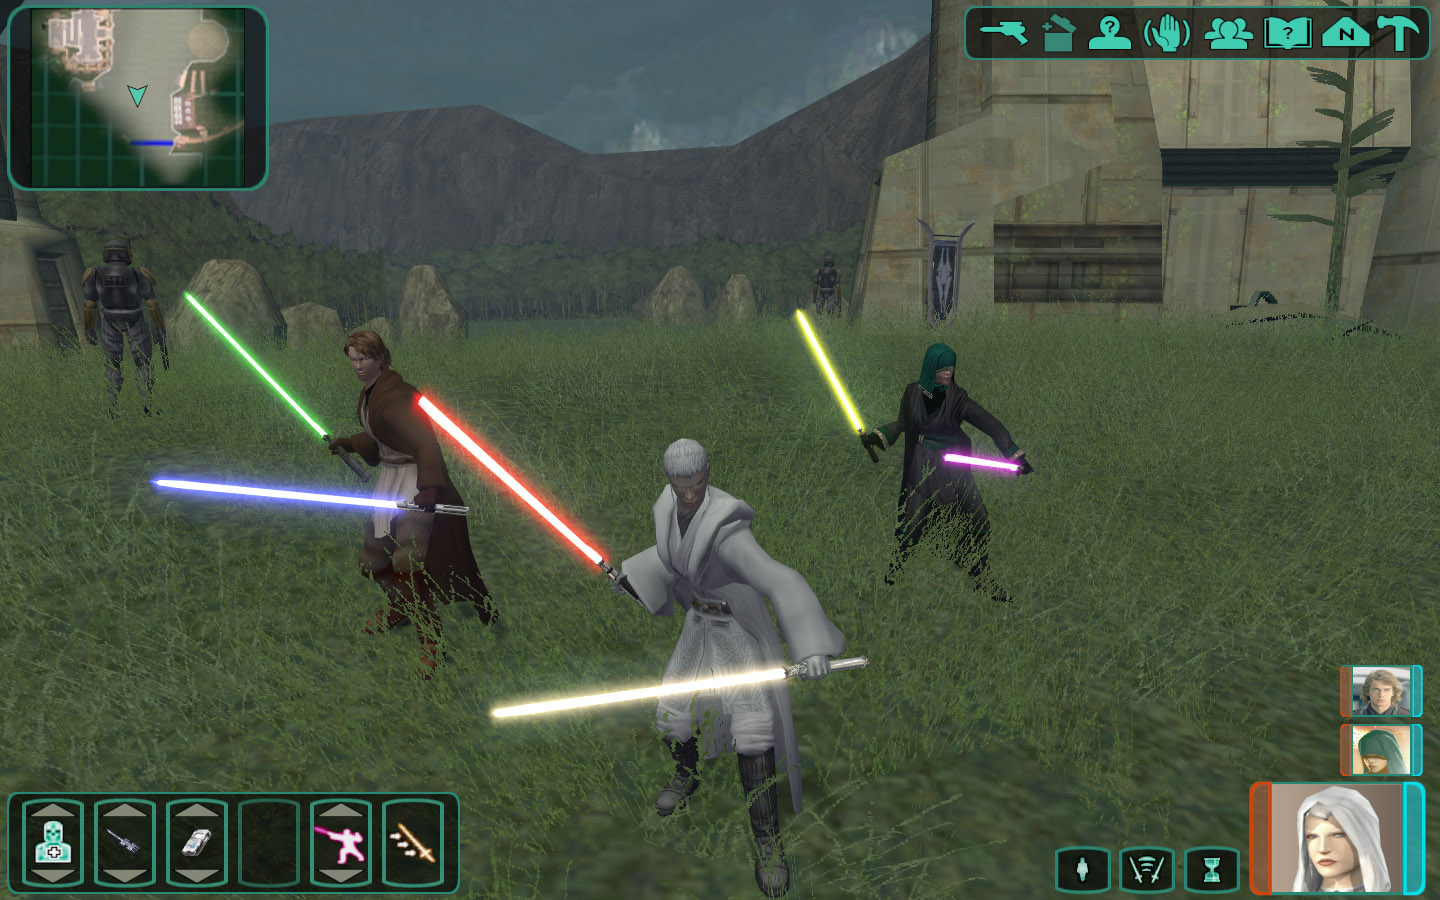 Nude mod for kotor 2 for pc adult photo